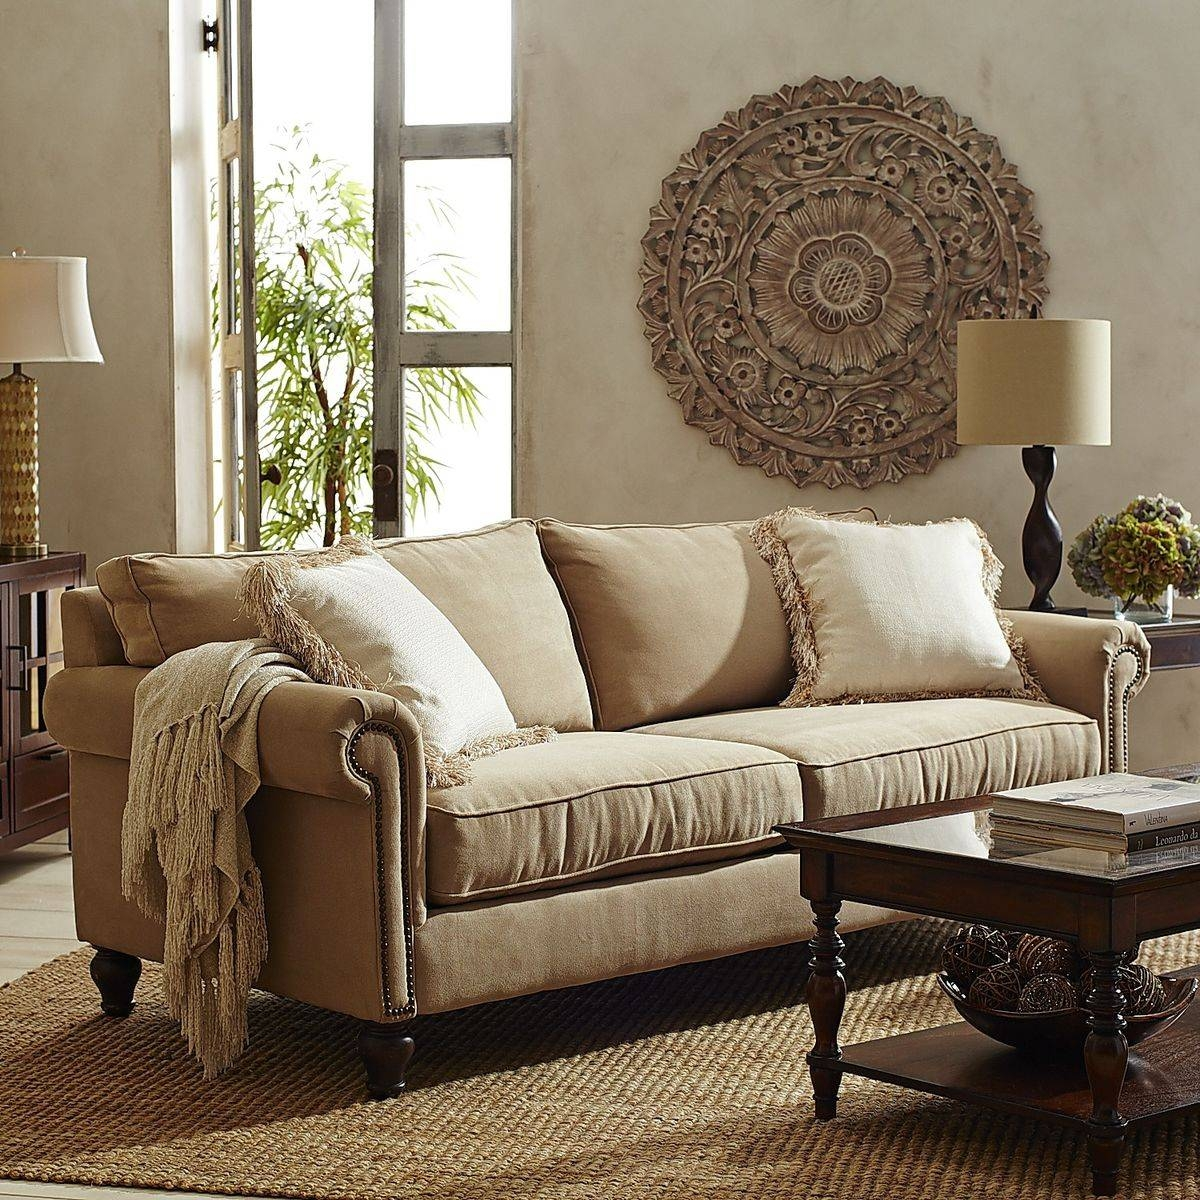 Interiorcrowd intended for Pier 1 Sofa Beds (Image 9 of 15)